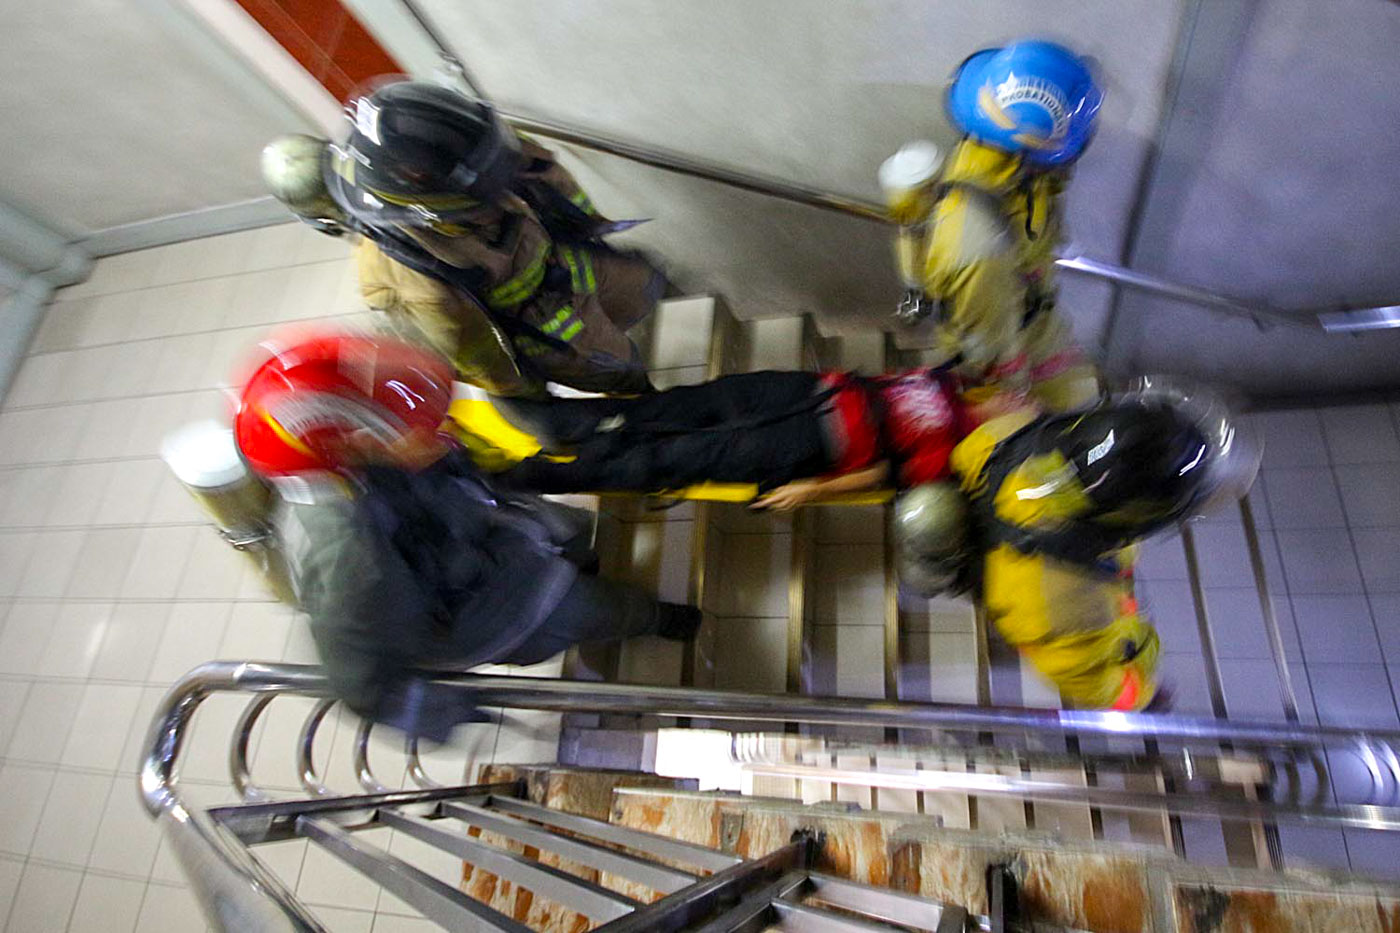 NORTH QUADRANT. Rescuers carry a victim on a stretcher out of the Quezon City Hall Building during the 3rd Metro Manila Shake Drill on Friday. Photo by Darren Langit/Rappler